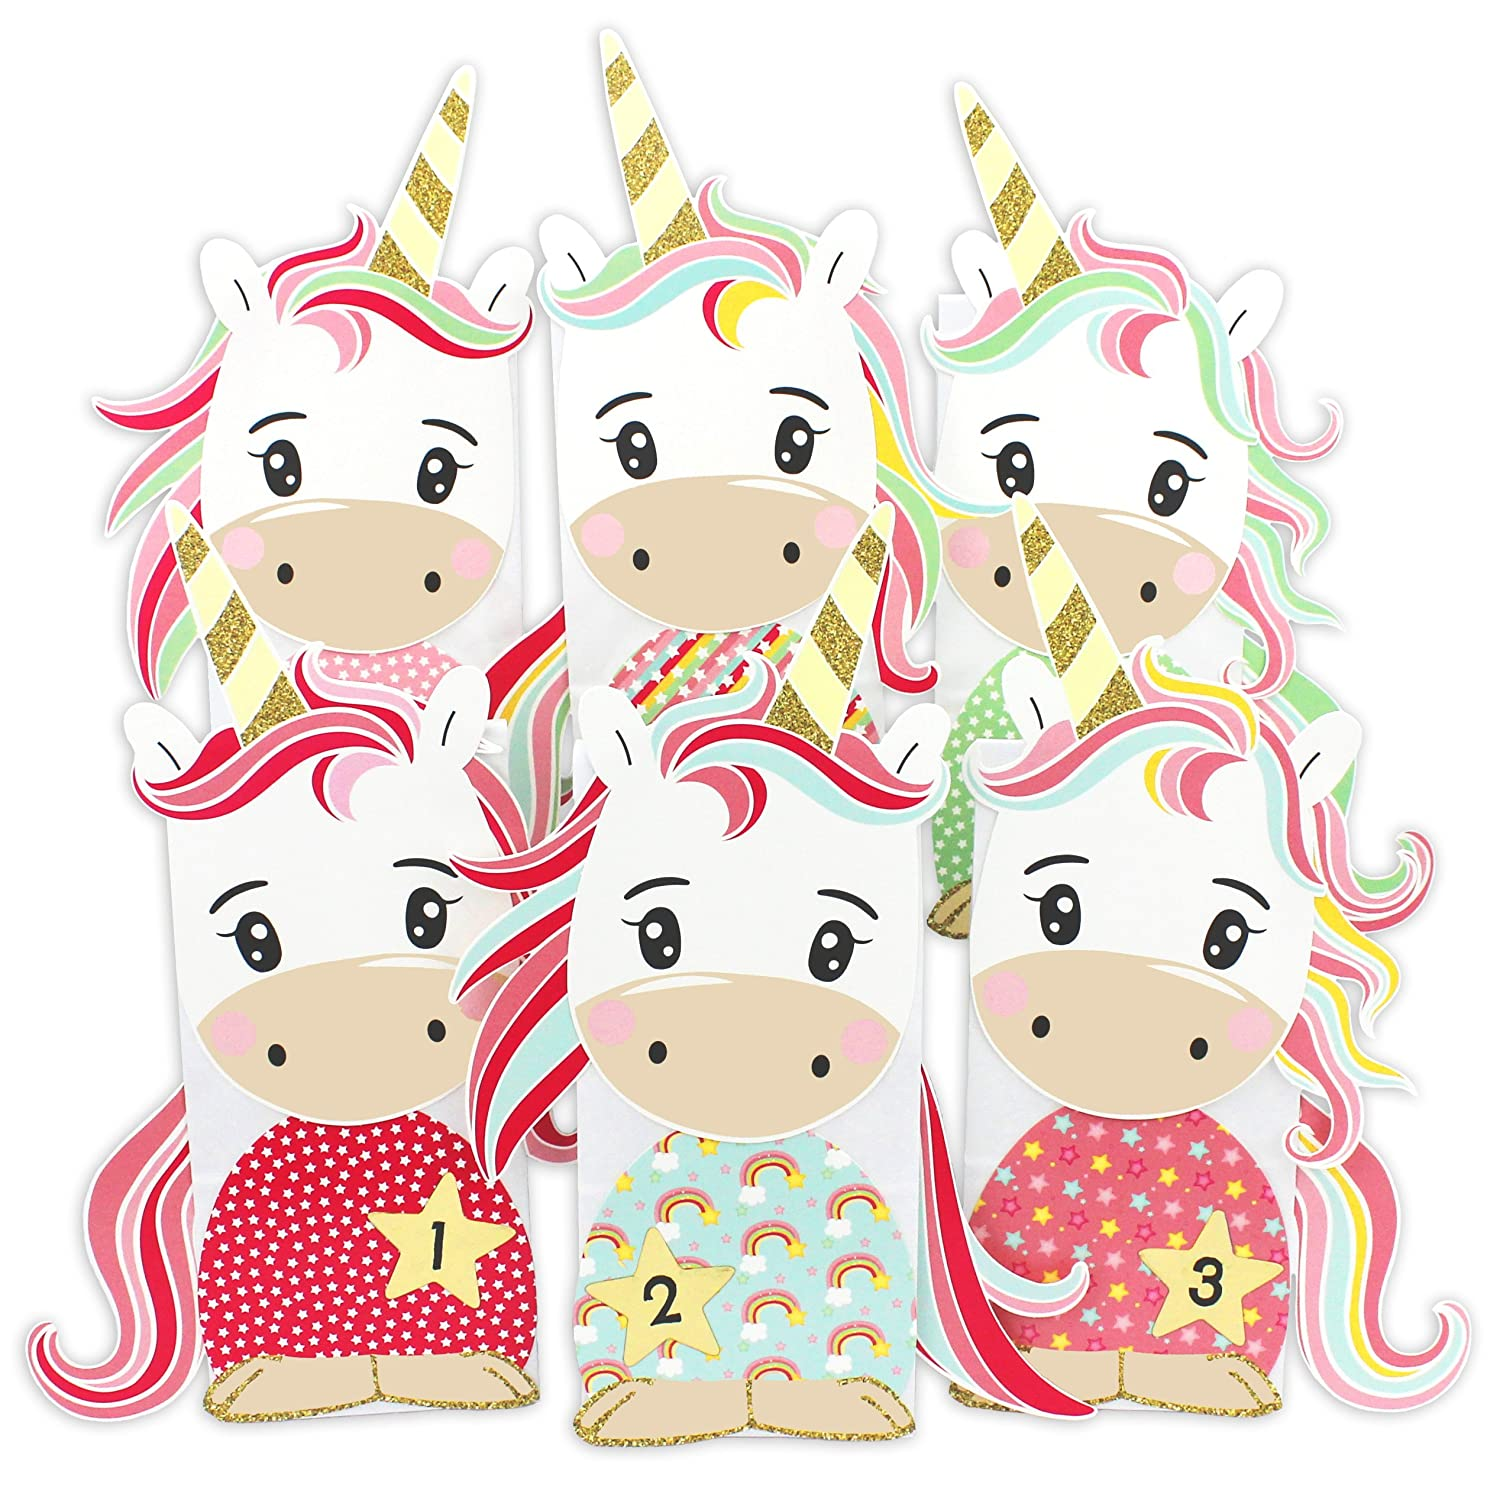 DIY Advent calendar - Unicorn bags – Advent calendar for making and filling PAPIERDRACHEN